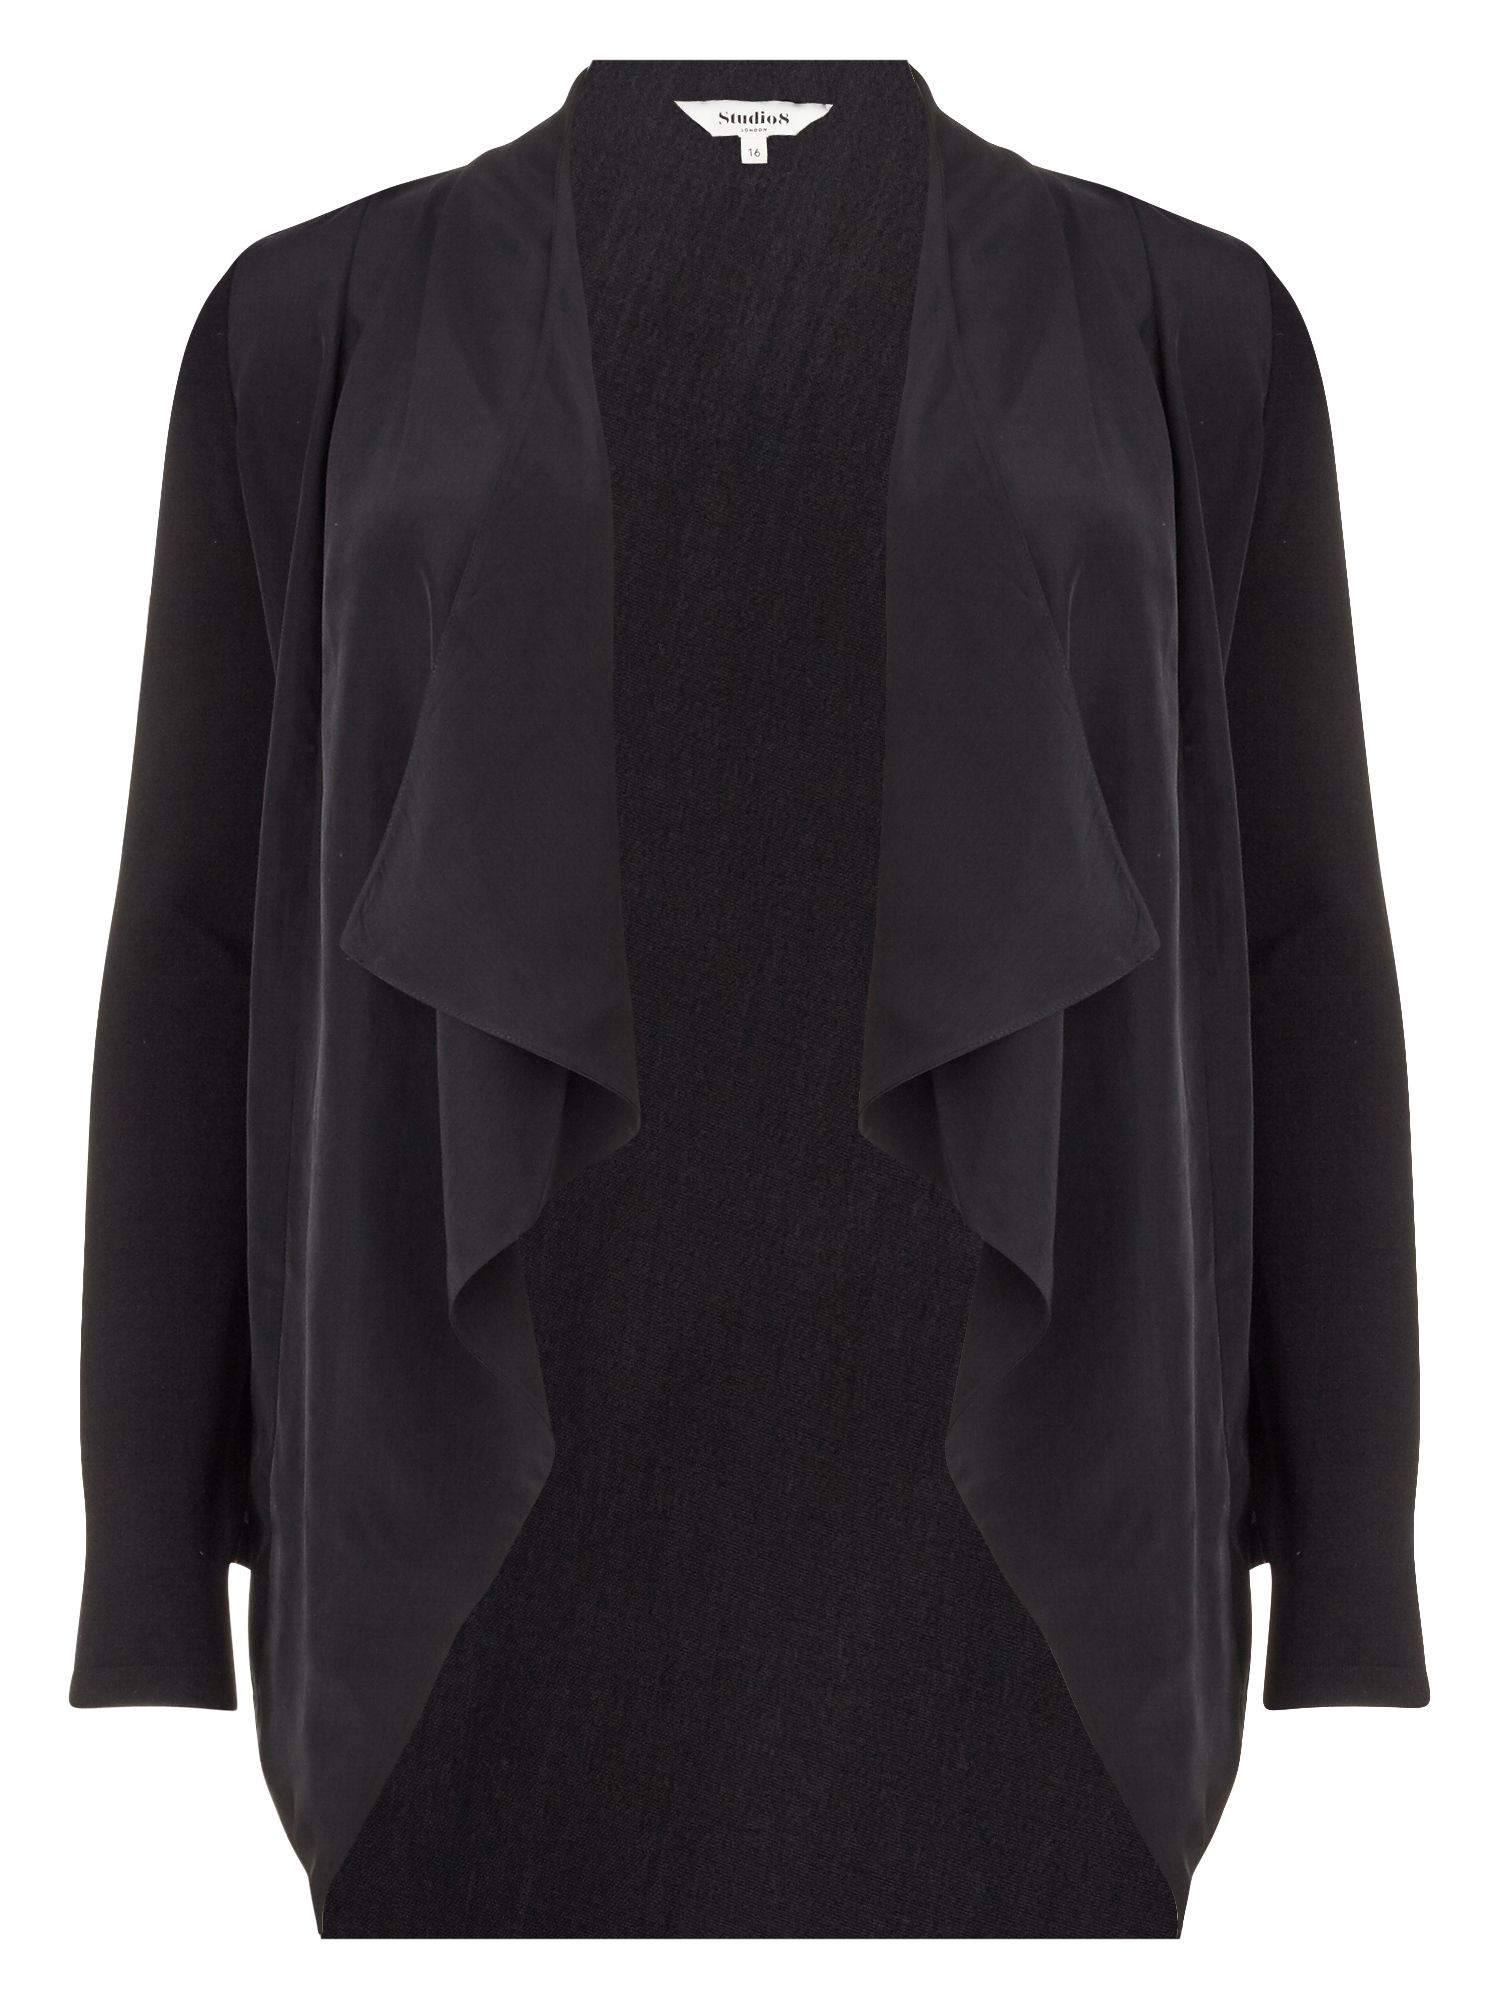 Studio 8 Jocelyn jacket, Black